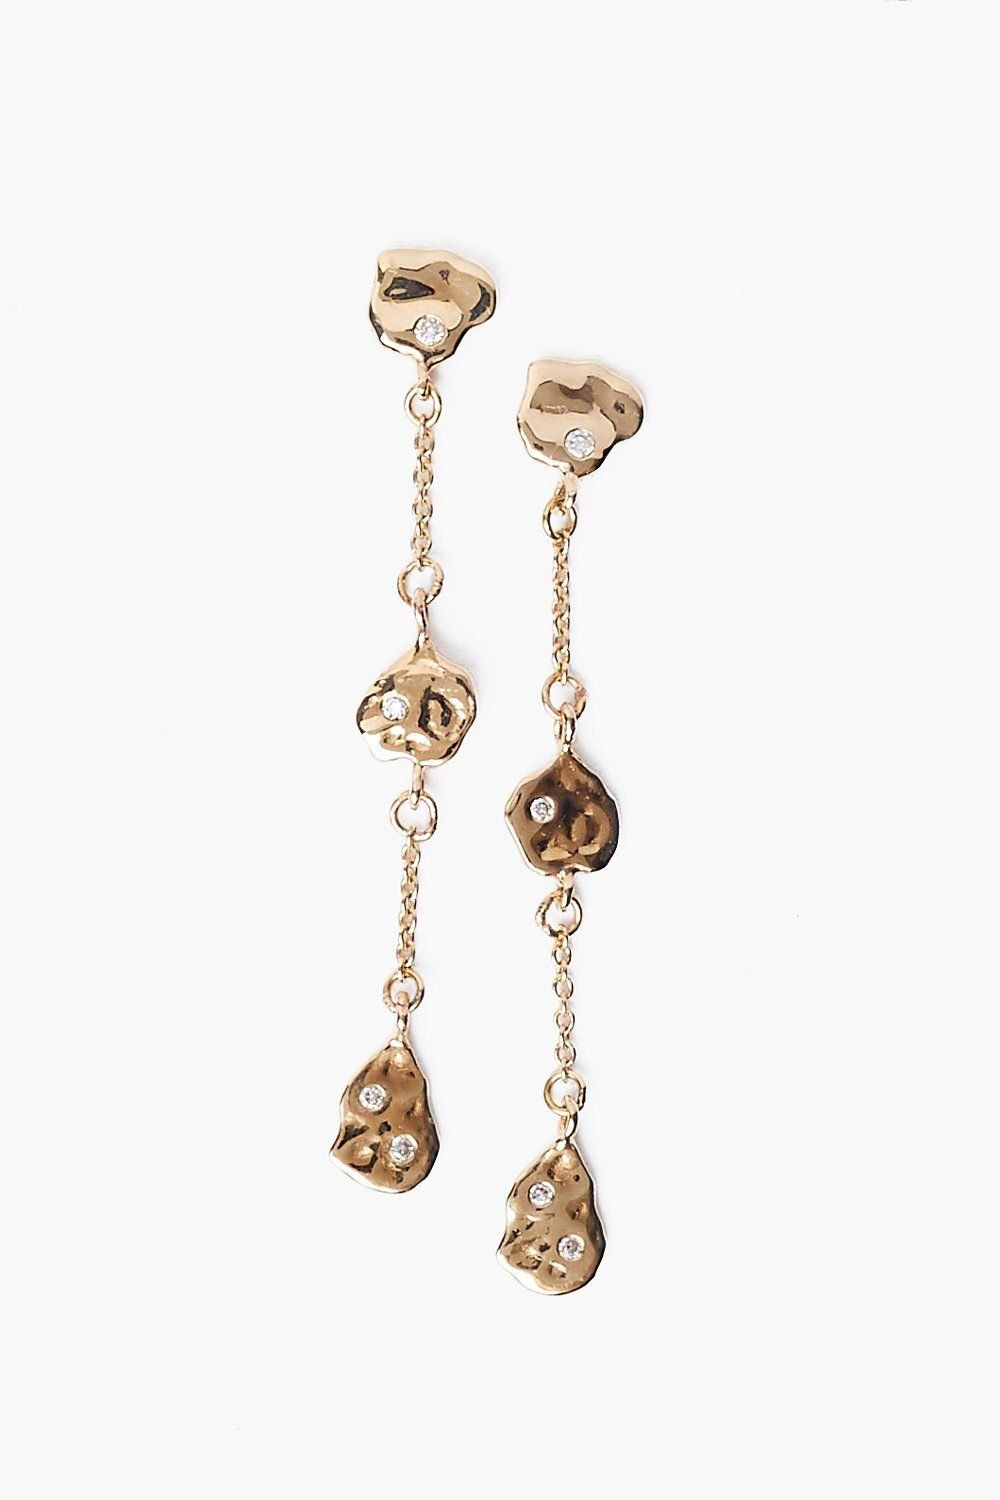 14k Gold Tiered Coin and Diamond Earrings